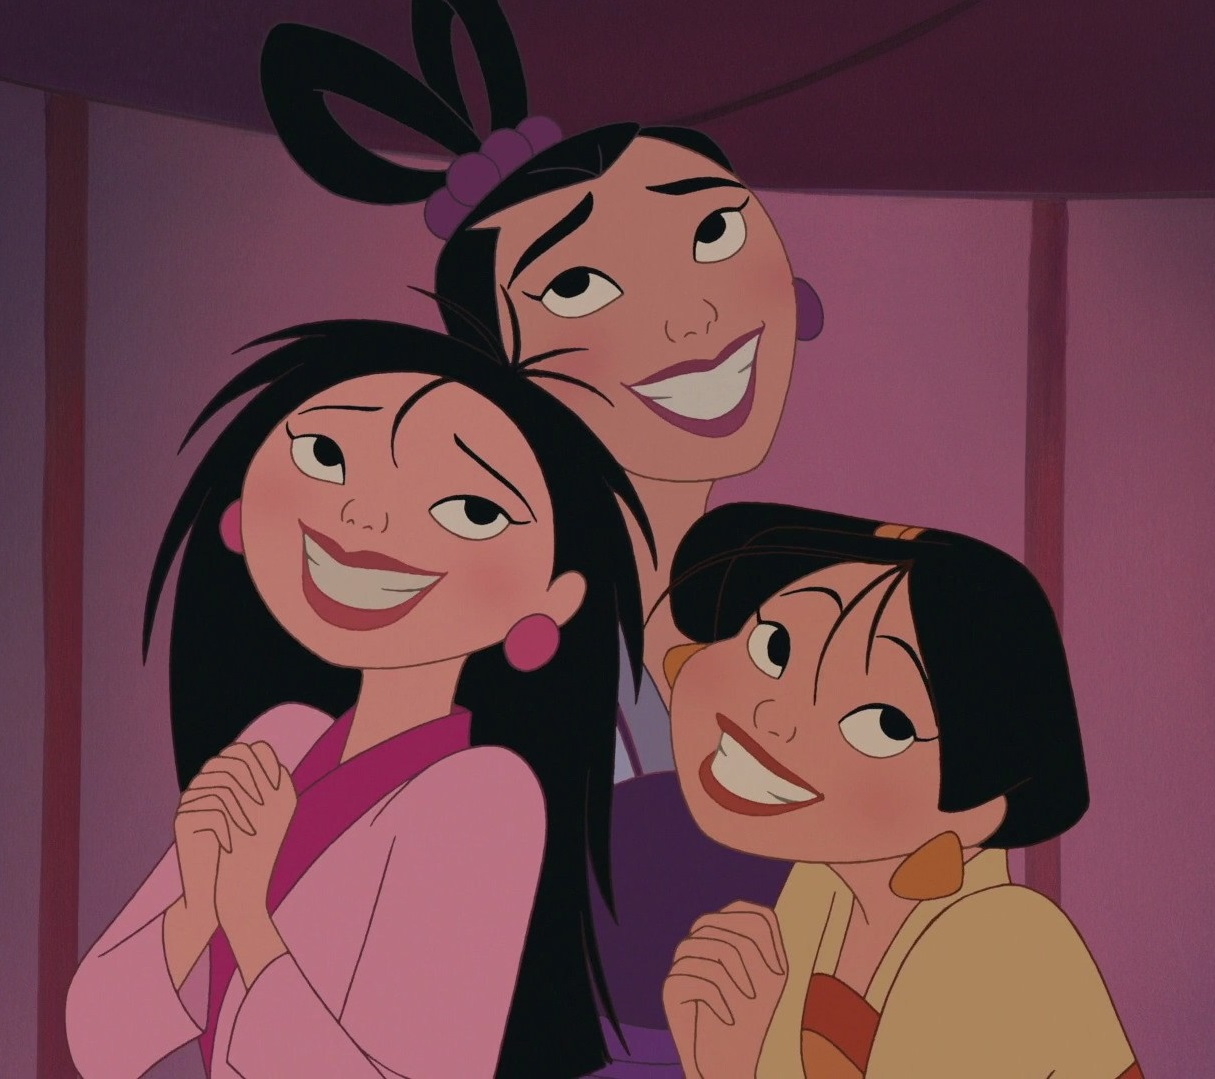 Ting-Ting, Su, and Mei